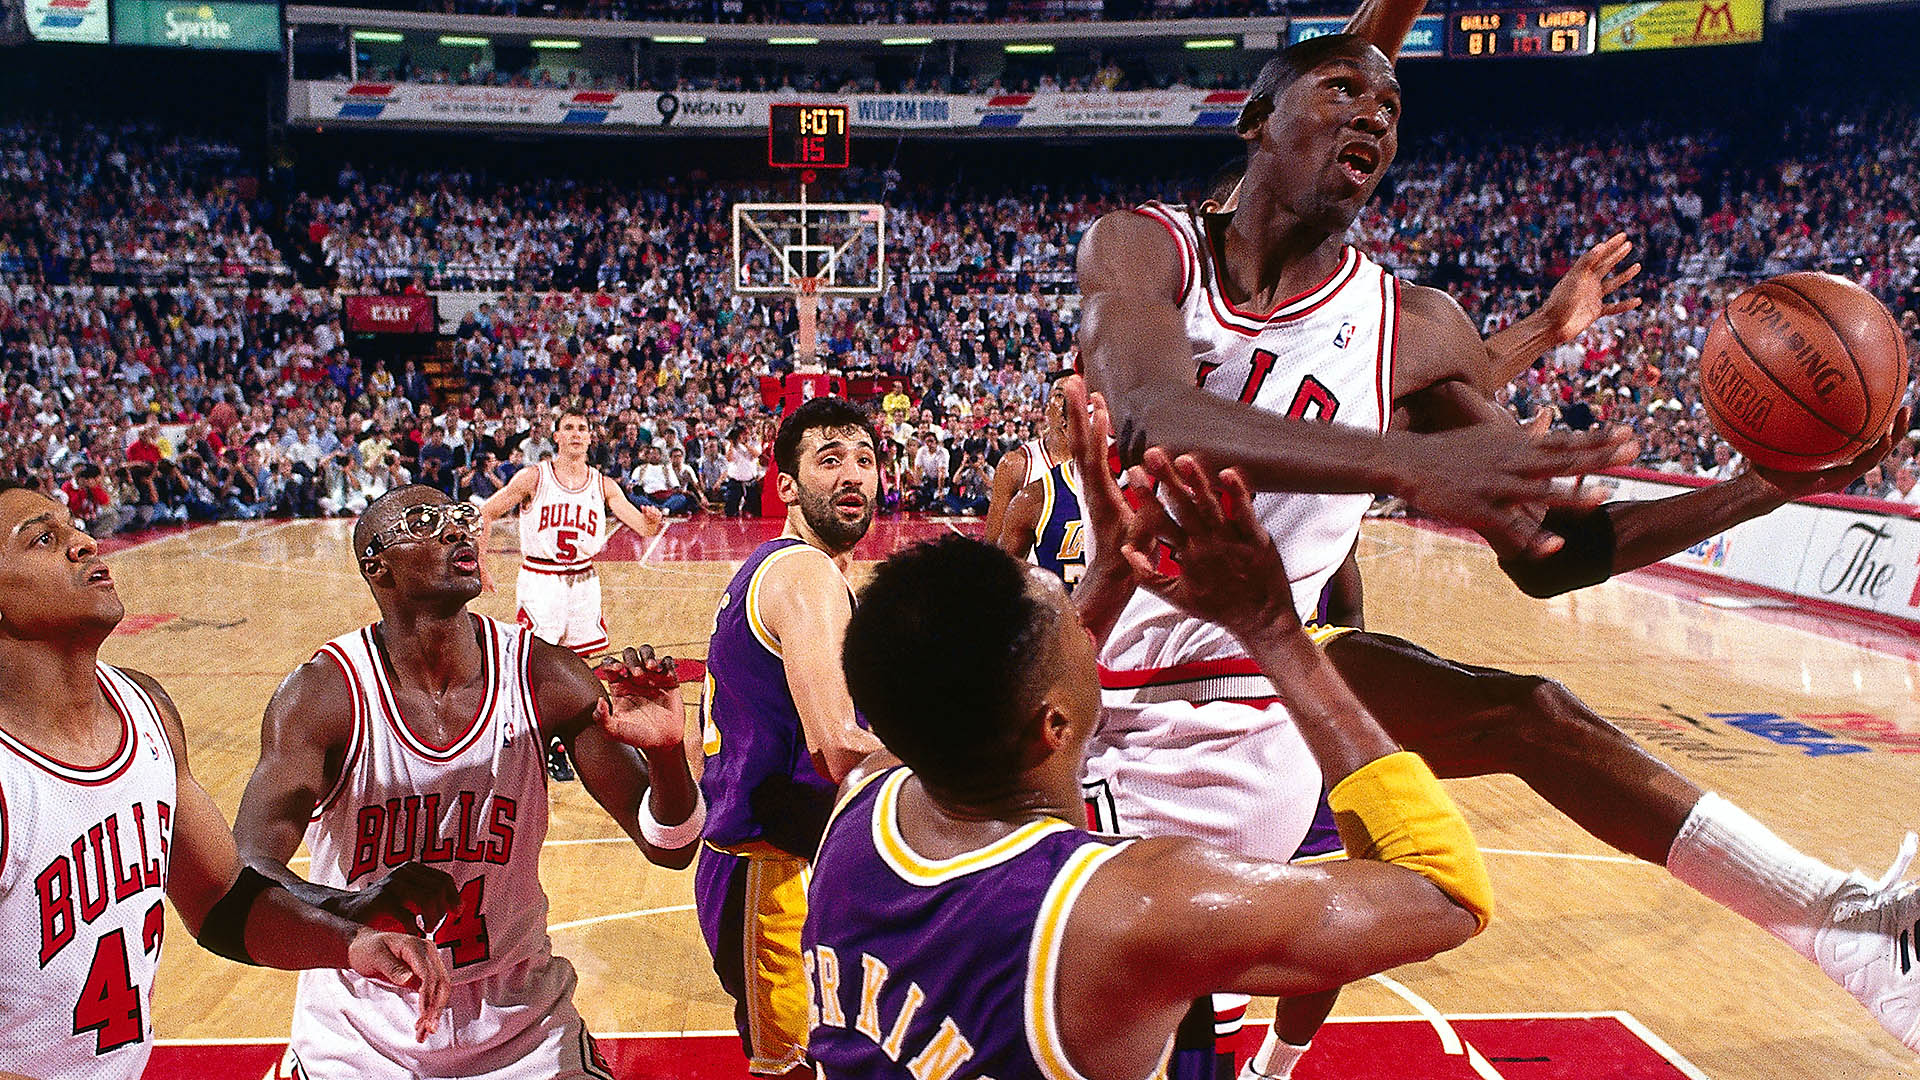 Top Moments: Michael Jordan leaves mark in Finals with mid-air acrobatics